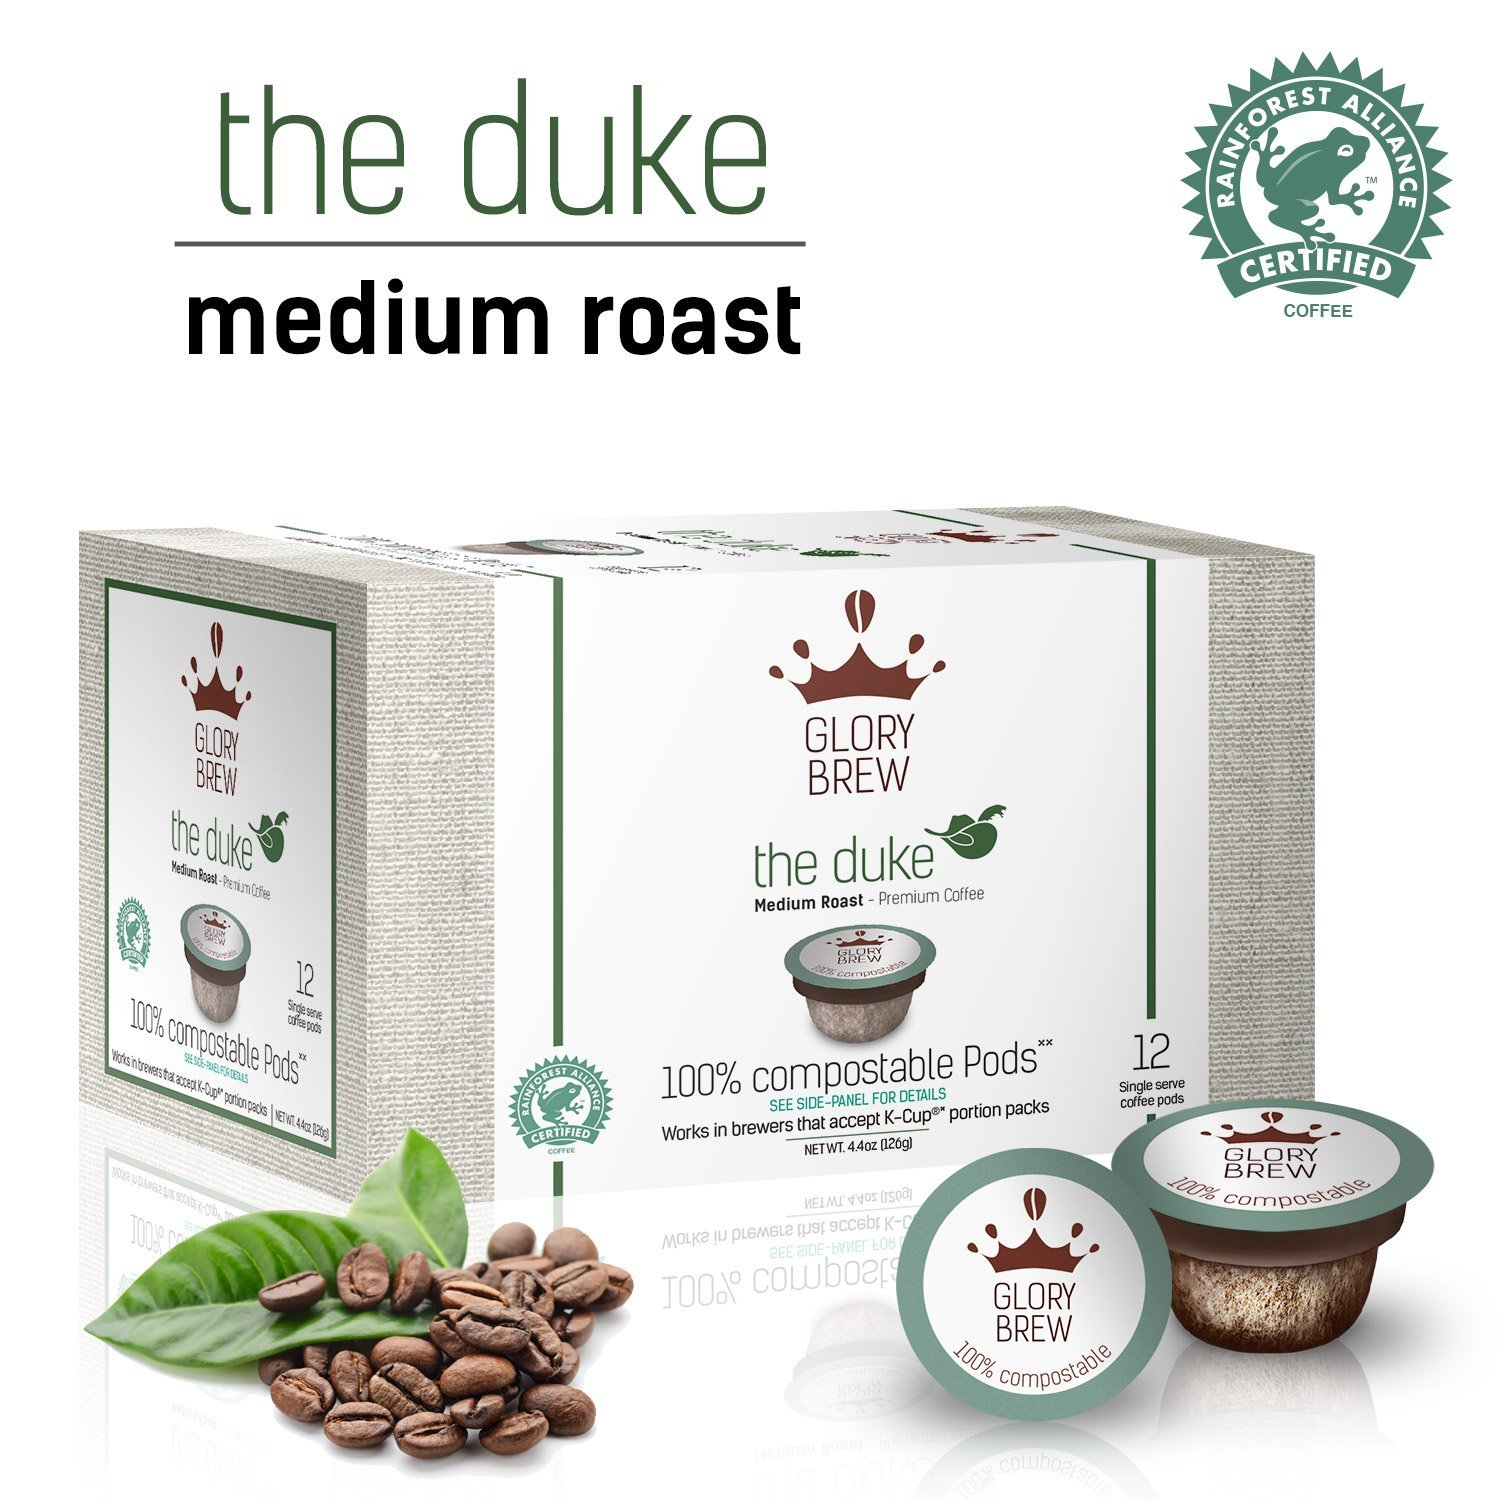 GLORYBREW - The Duke - 72 count 100% Compostable Coffee Pods for Keurig K-Cup Coffee Brewers - Rainforest Alliance Certified - Medium Roast | Better than Recyclable and Biodegradable Coffee Pods by GLORYBREW